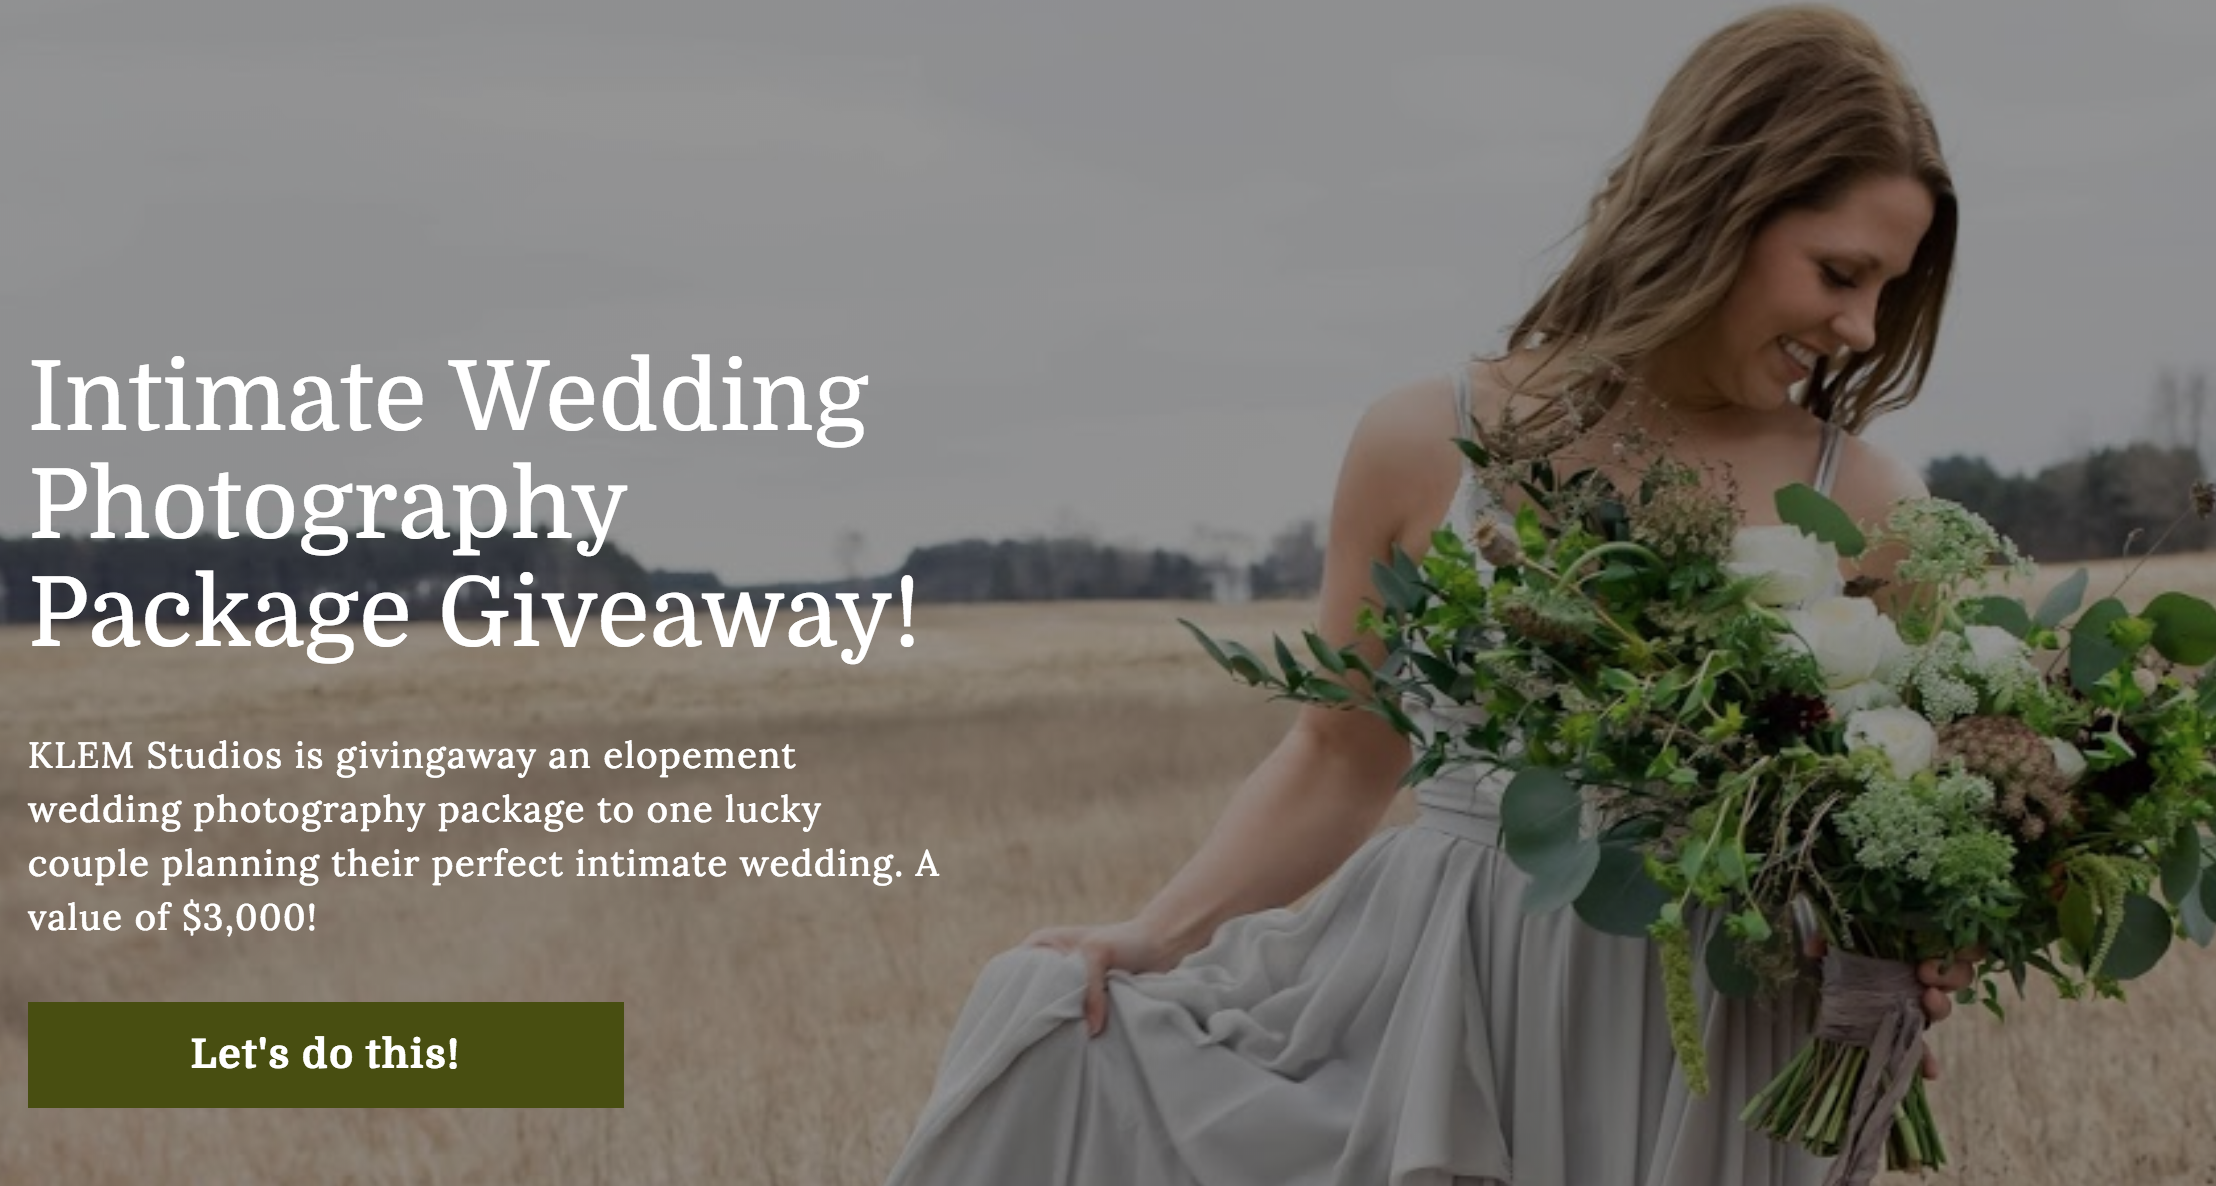 We're giving away an Elopement Package to one lucky couple! Join my Facebook group for details!